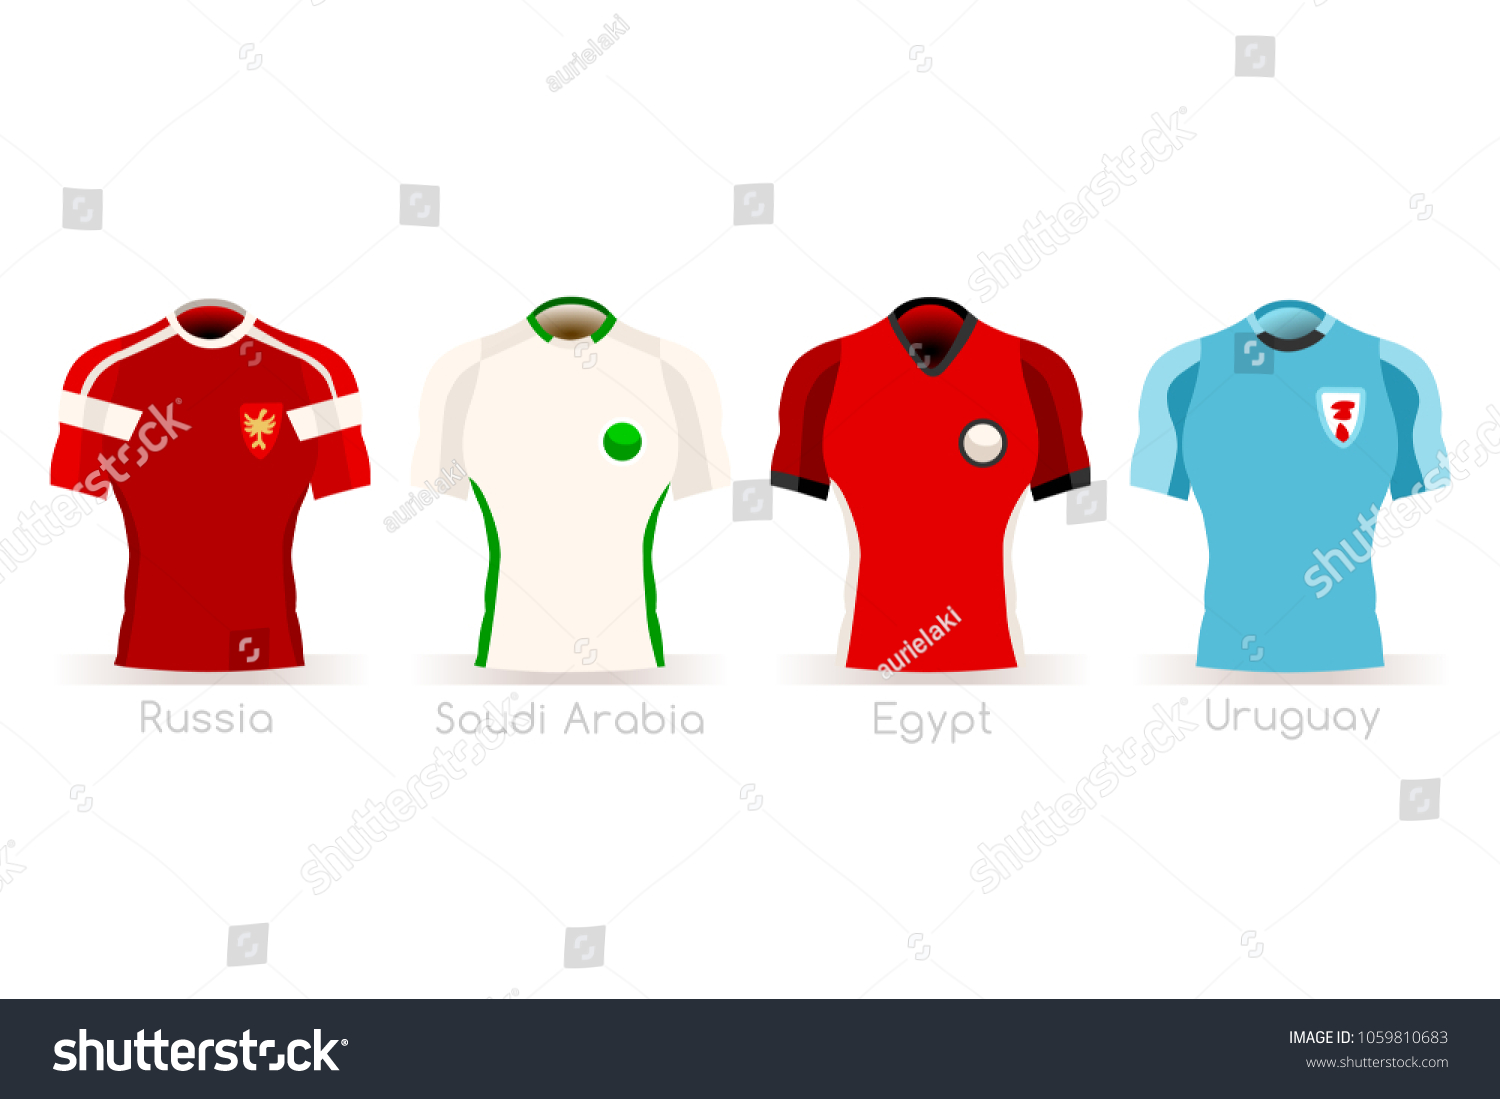 Russia 2018 soccer world cup group A players with team jersey flags.  Referee football illustration 965347070